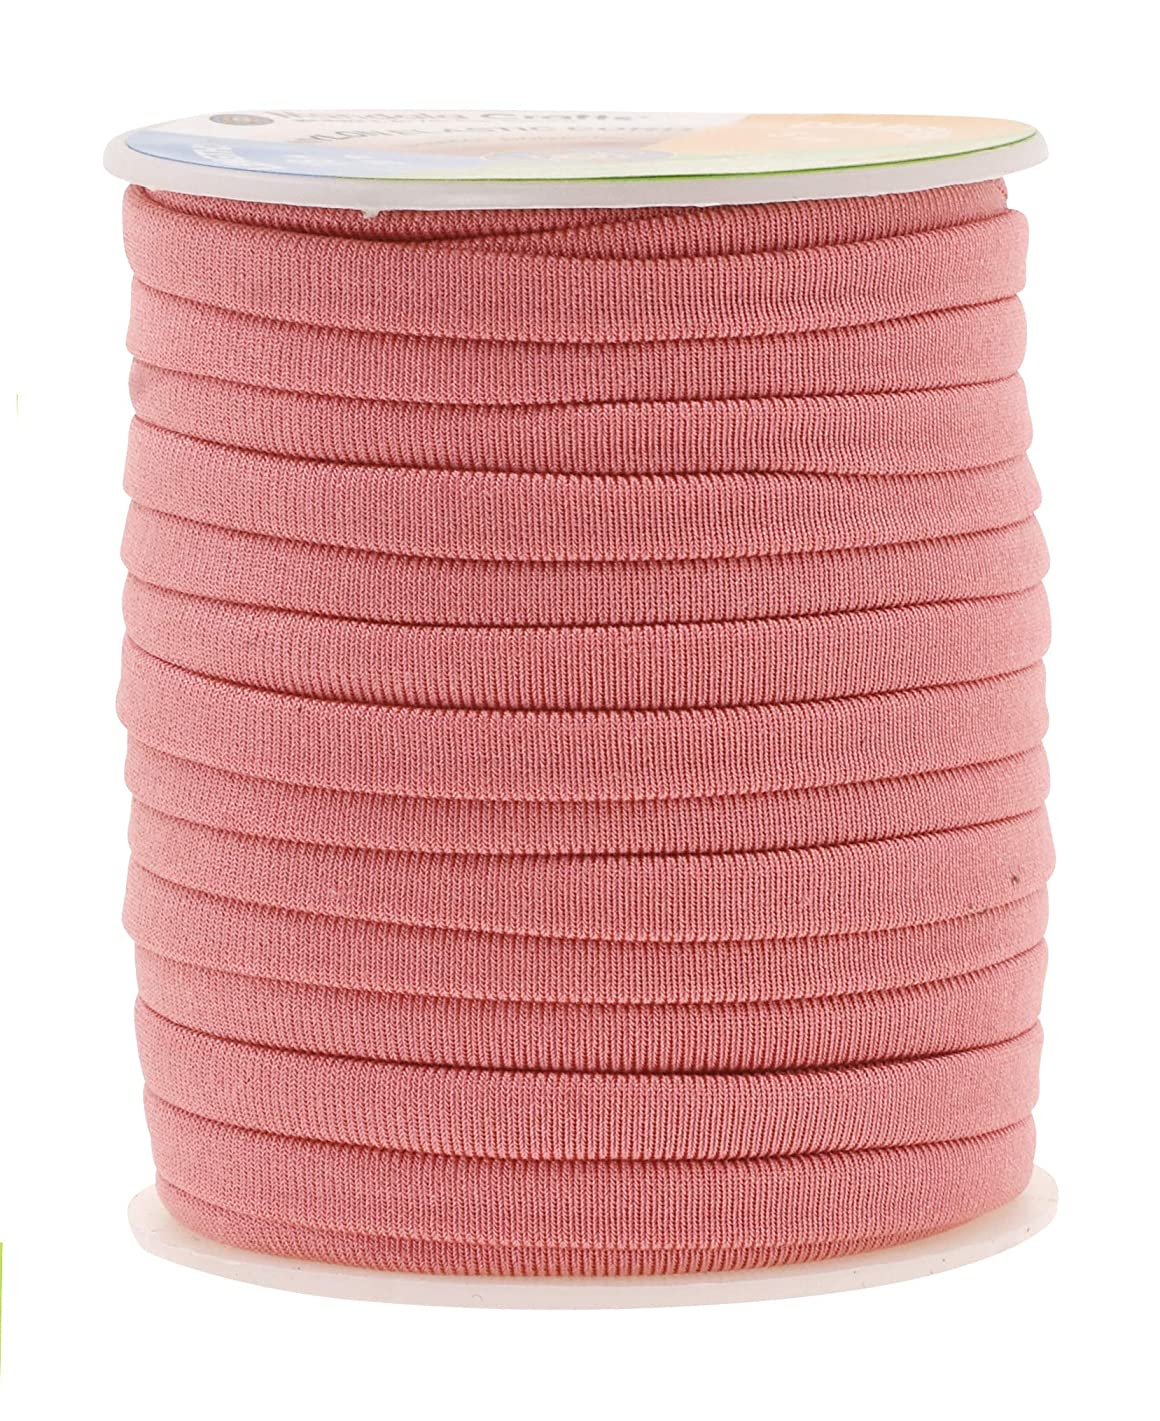 Mandala Crafts Soft Elastic Cord from Spandex Nylon Fabric for Jewelry Making, Sewing, and Crafting (Blush)